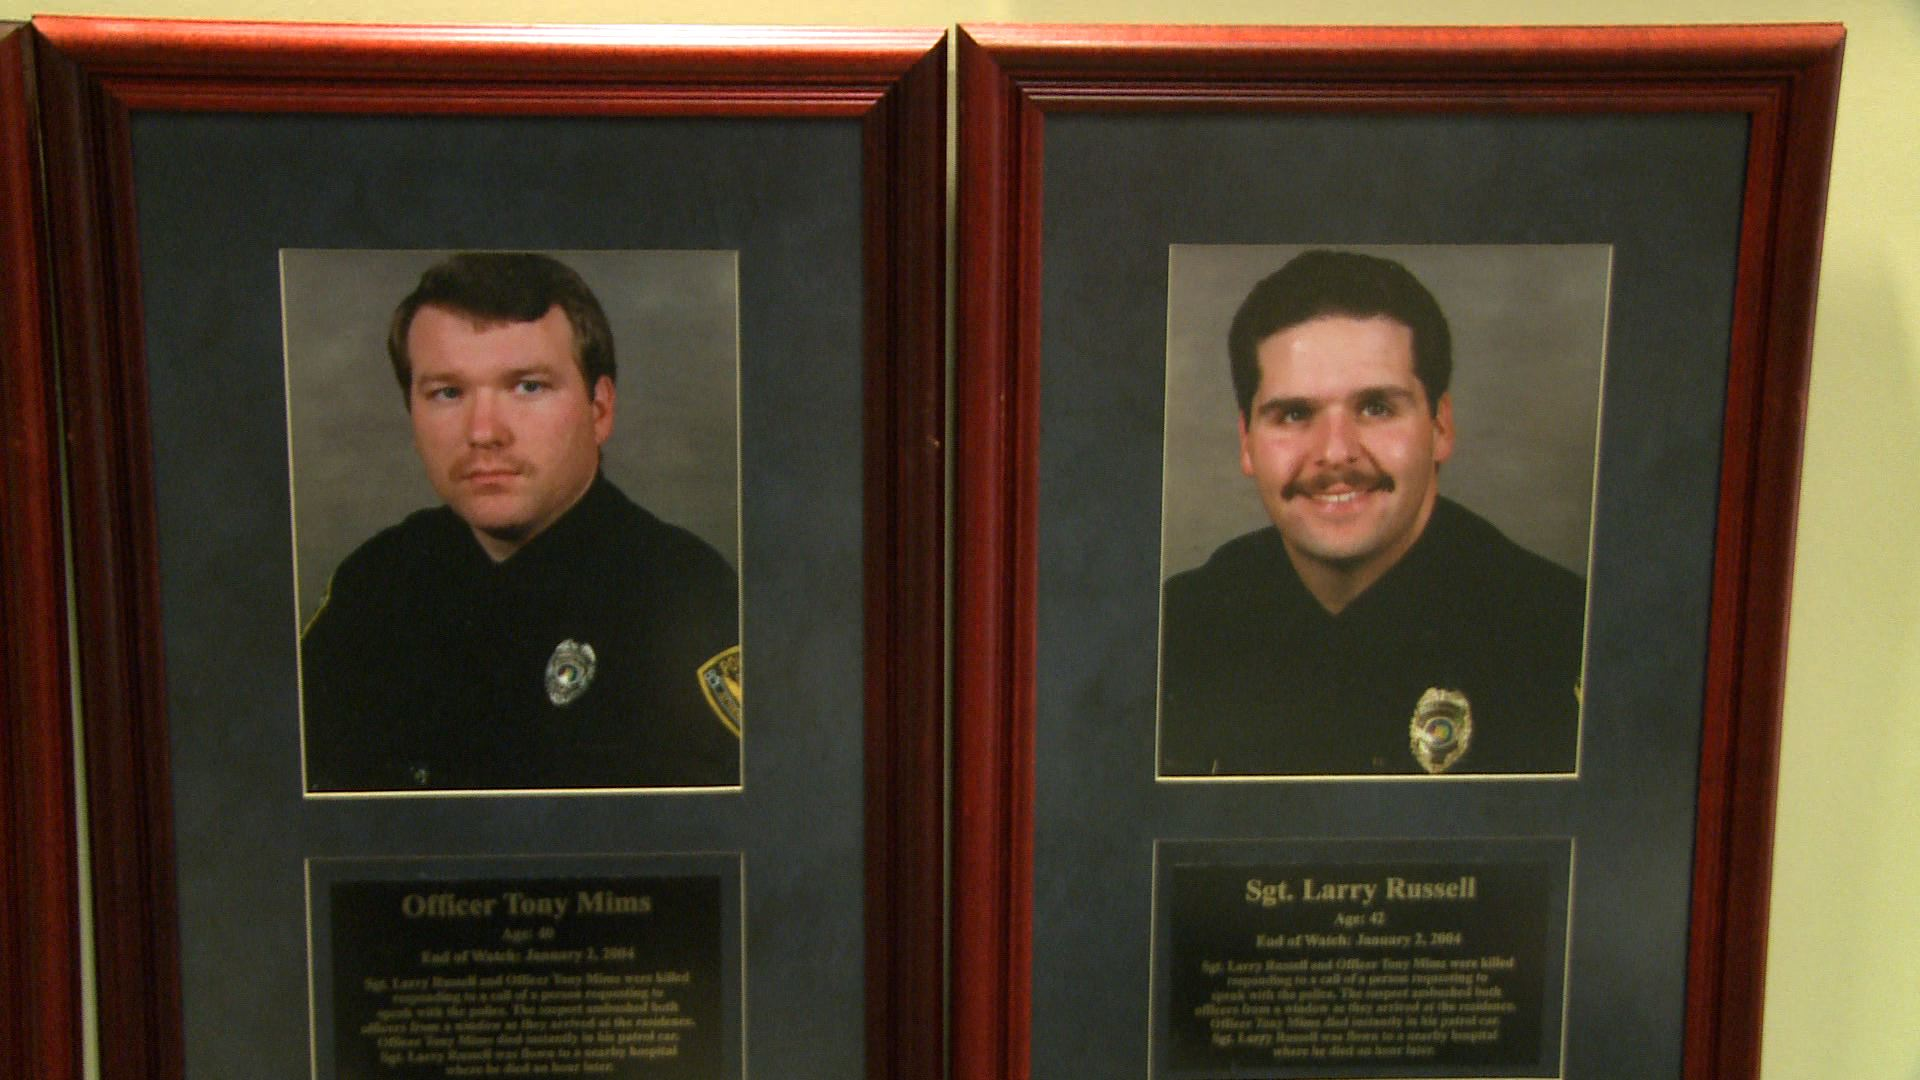 L to R: Officer Tony Mims, Sgt. Larry Russell